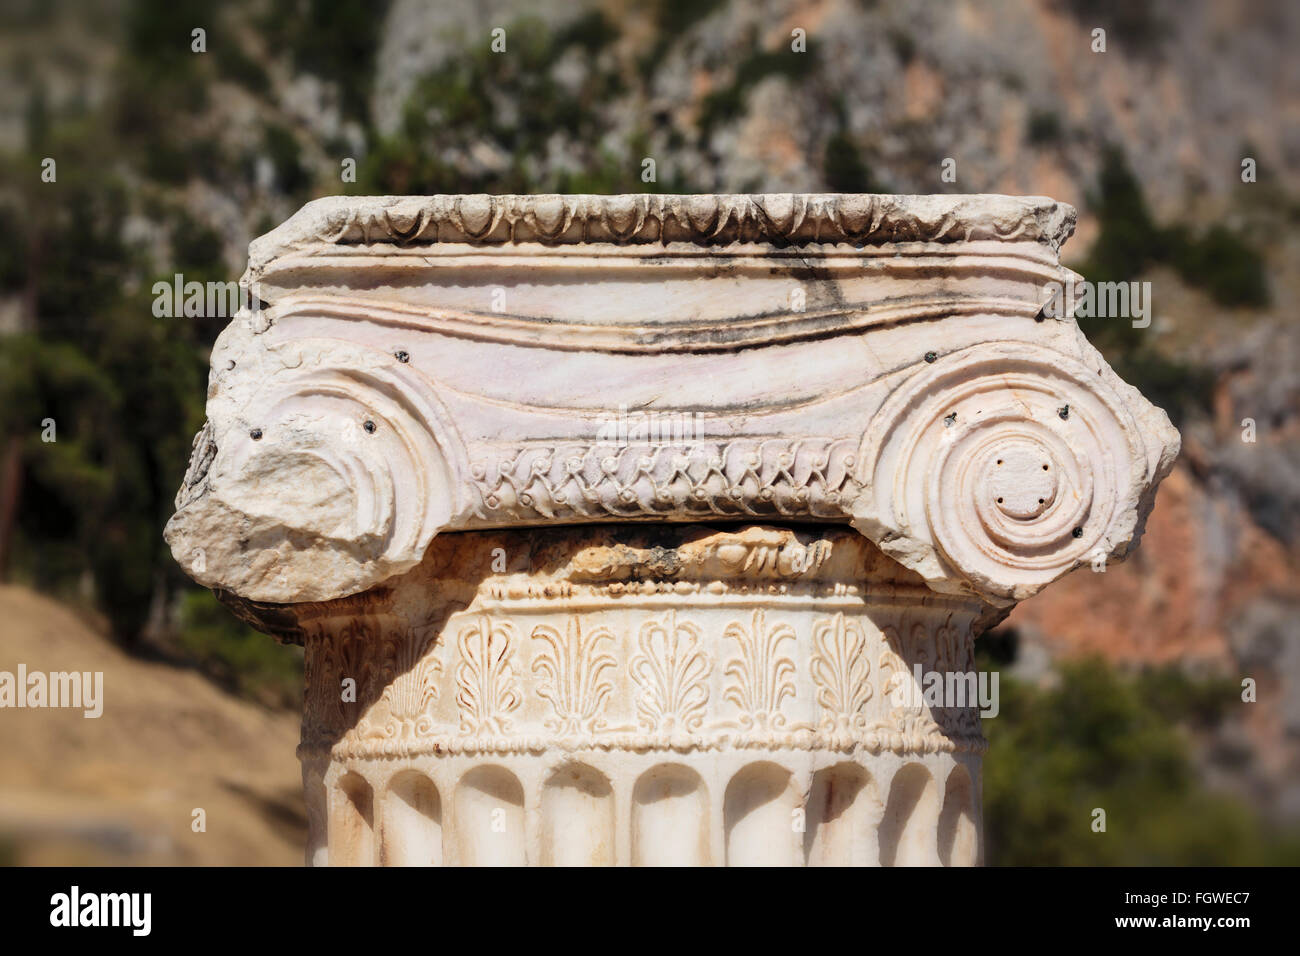 Ancient Delphi, Phocis, Greece.  Broken column on the Sacred Way crowned by Corinthian capital - Stock Image